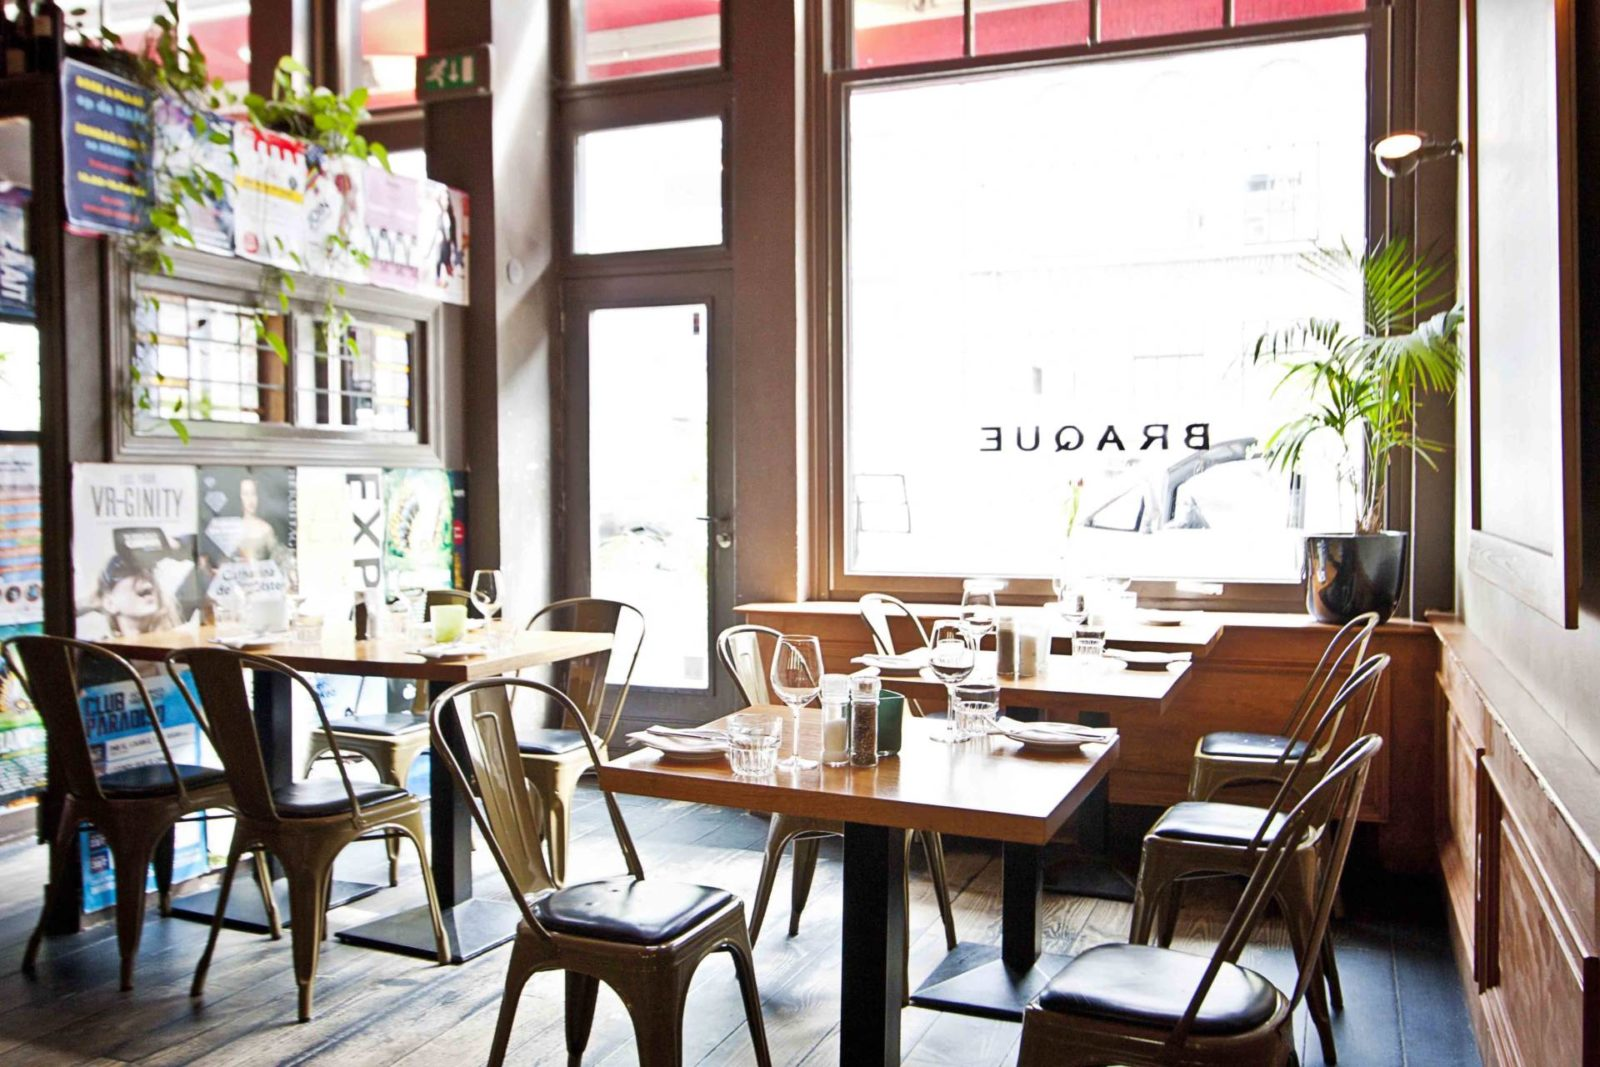 Couverts, Restaurant Braque, Amsterdam